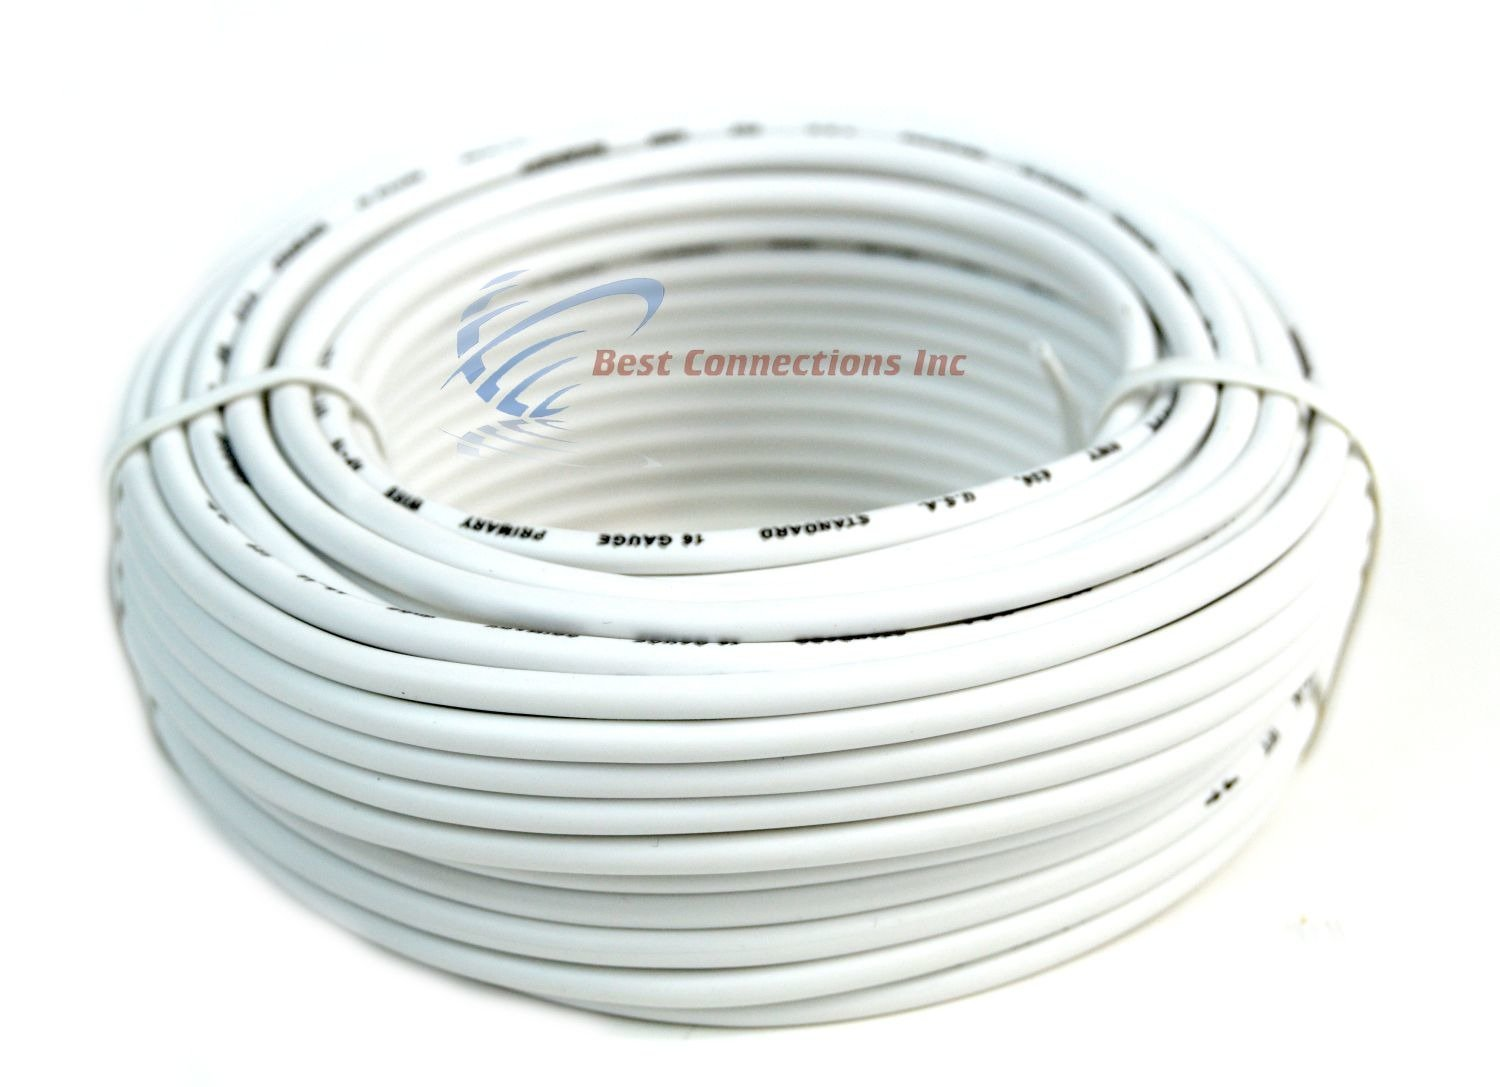 16 Gauge 50'FT Remote Wire Copper Clad Single Conductor 6 Primary Colors by Best Connections (Image #8)